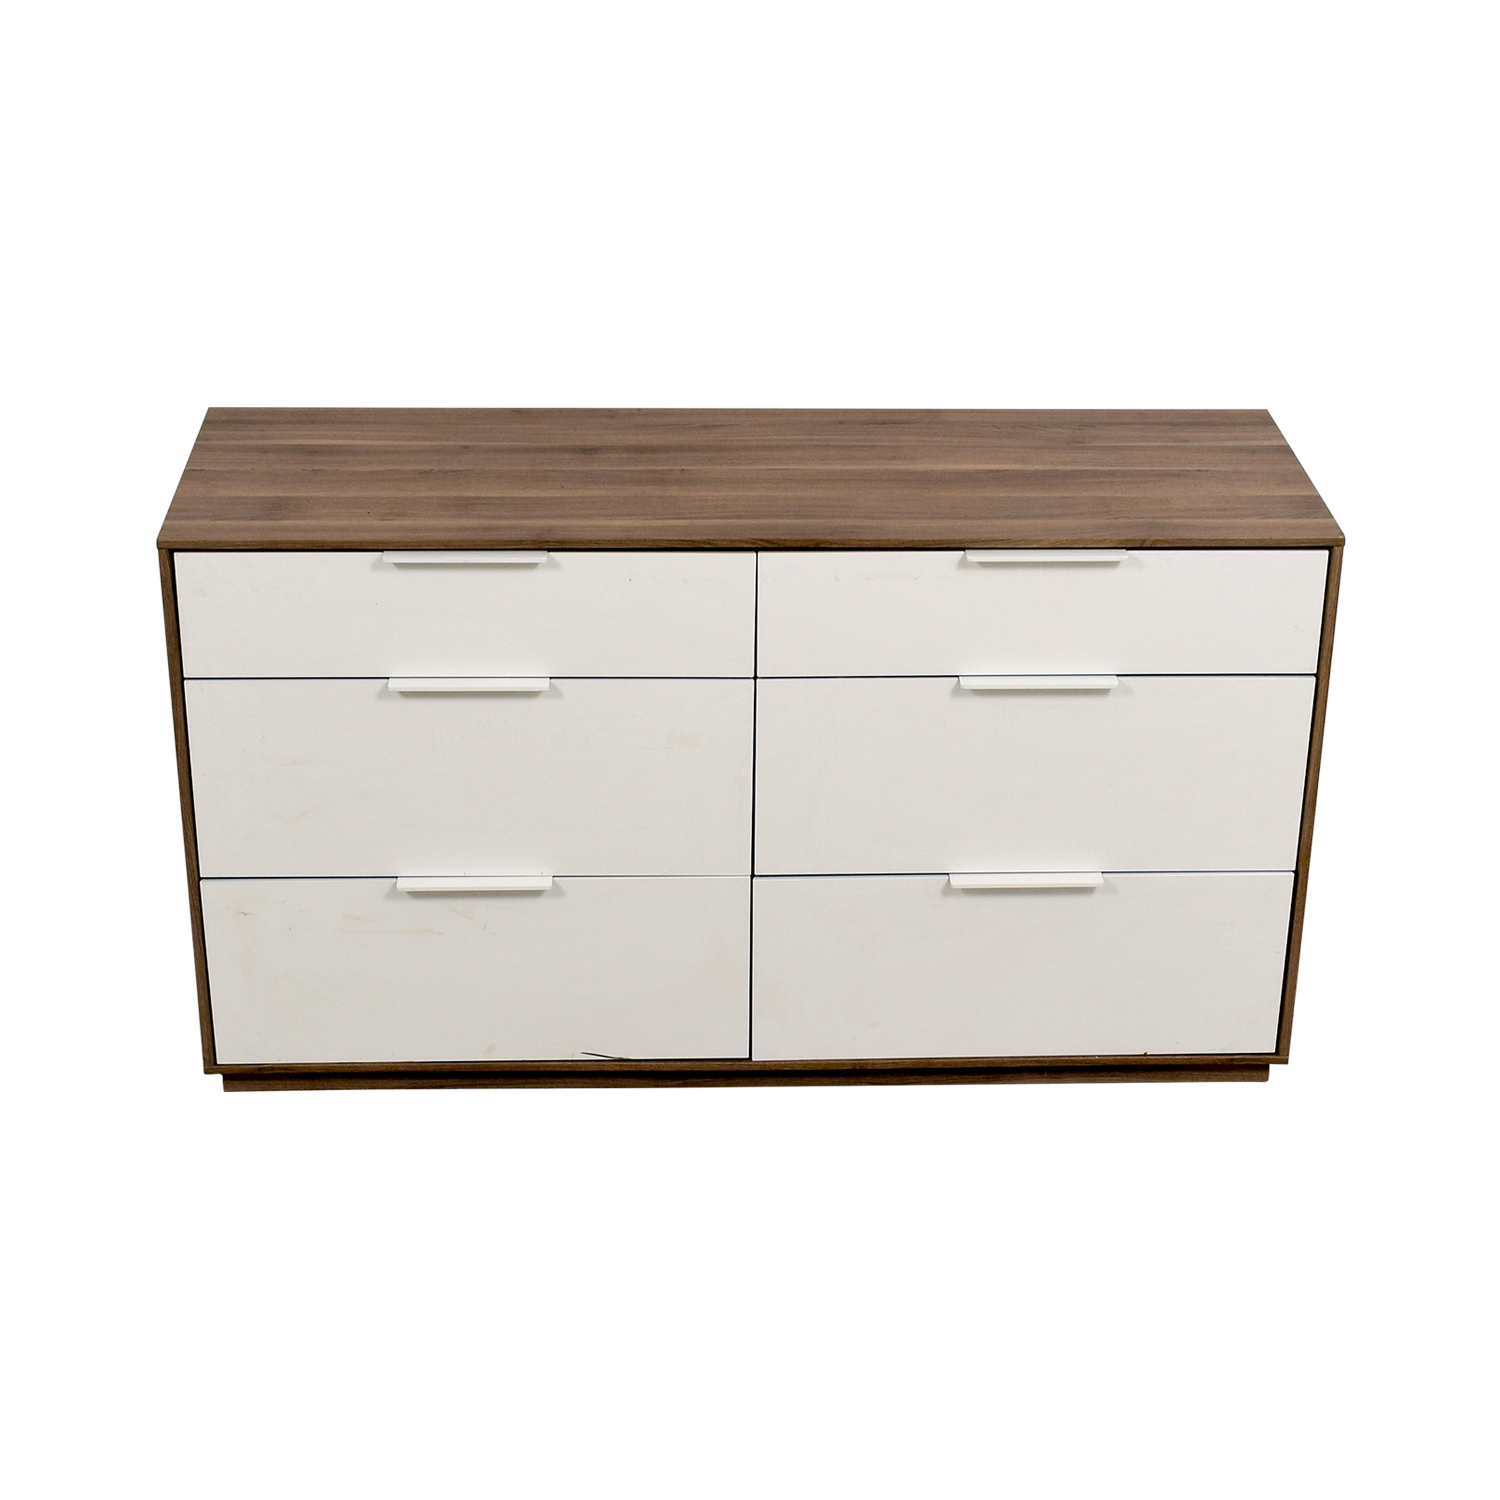 IKEA White Six-Drawer Dresser sale